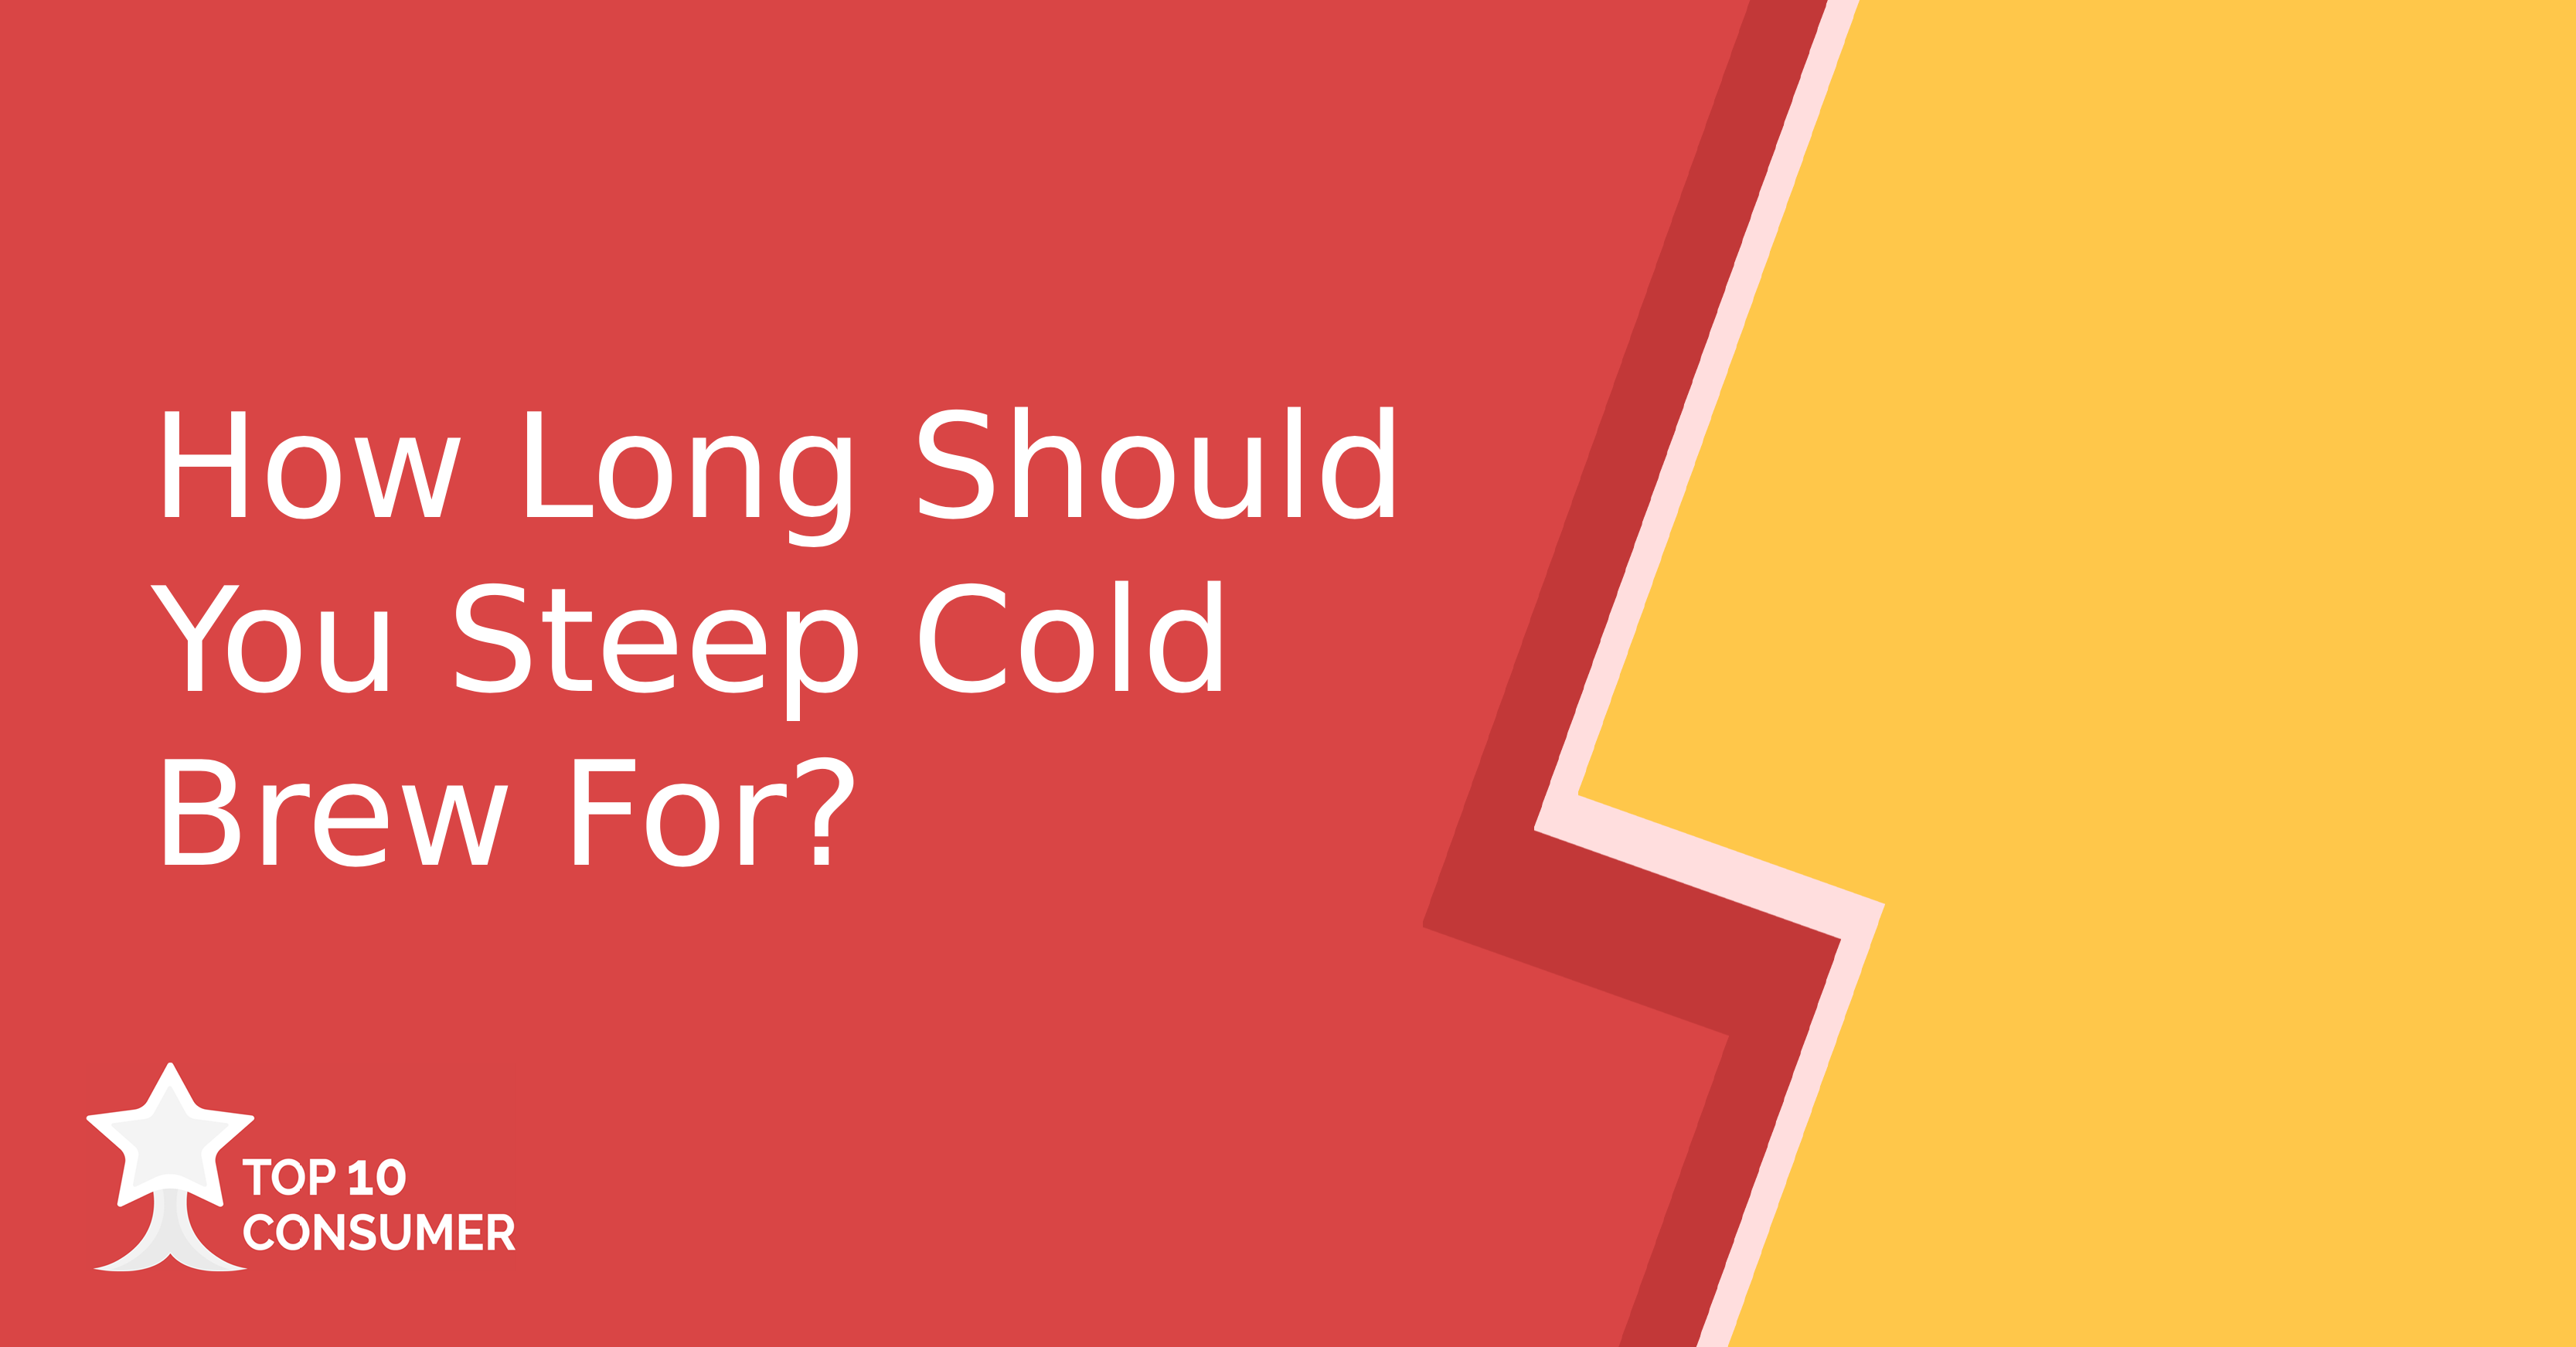 How Long Should You Steep Cold Brew For?